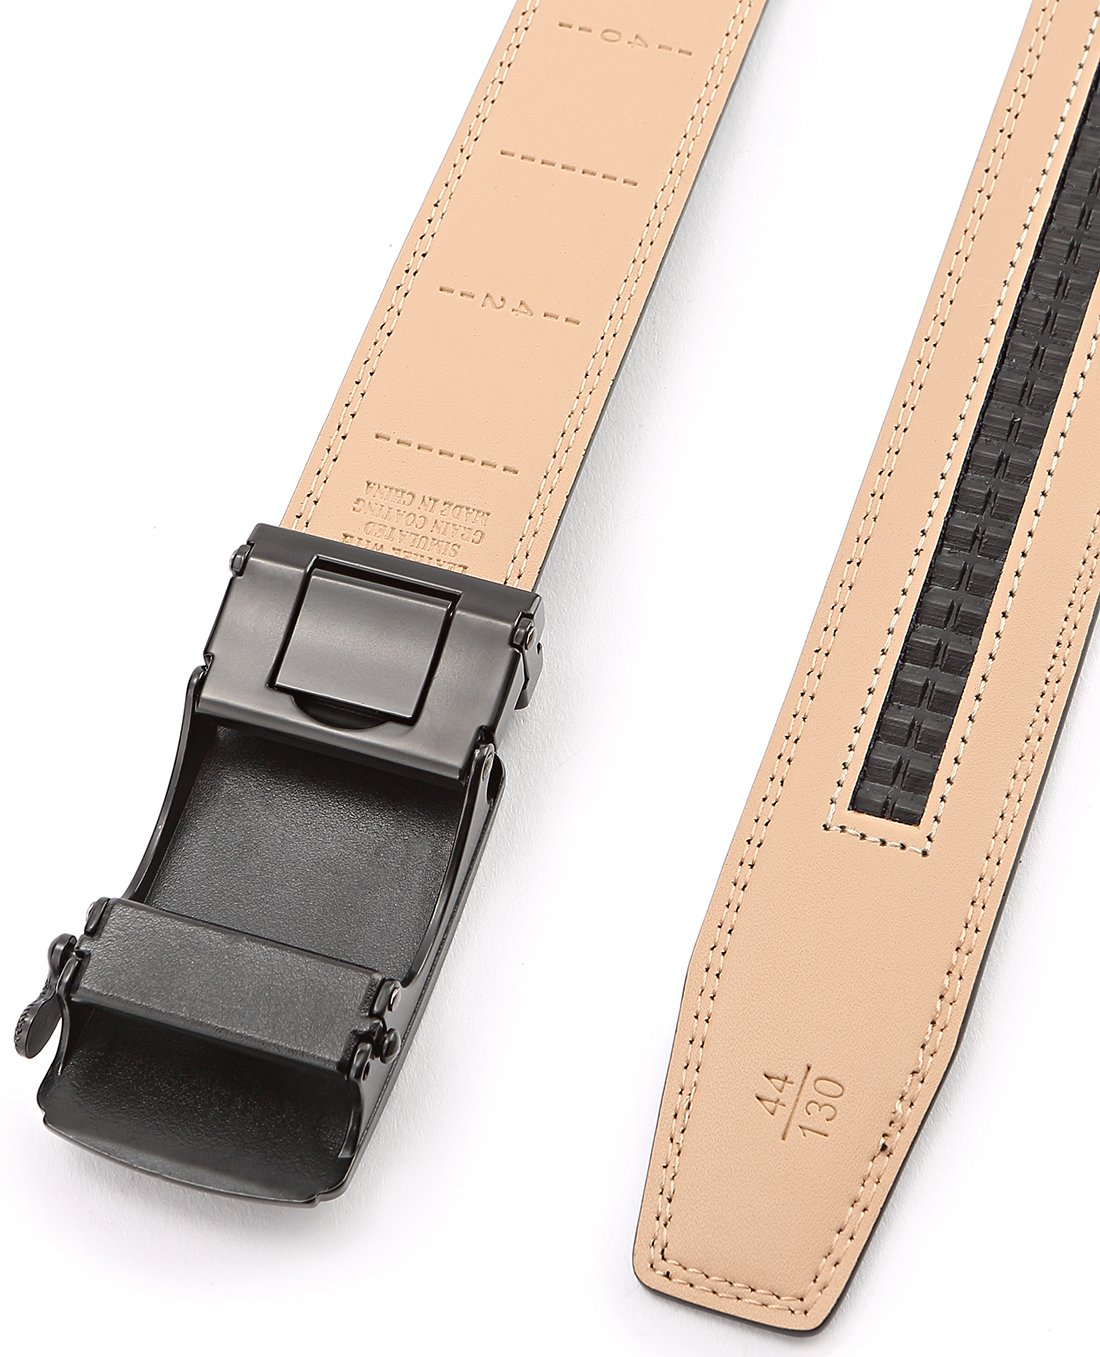 Men's Belt,Bulliant Slide Ratchet Belt For Men Genuine Leather, Trim To Fit